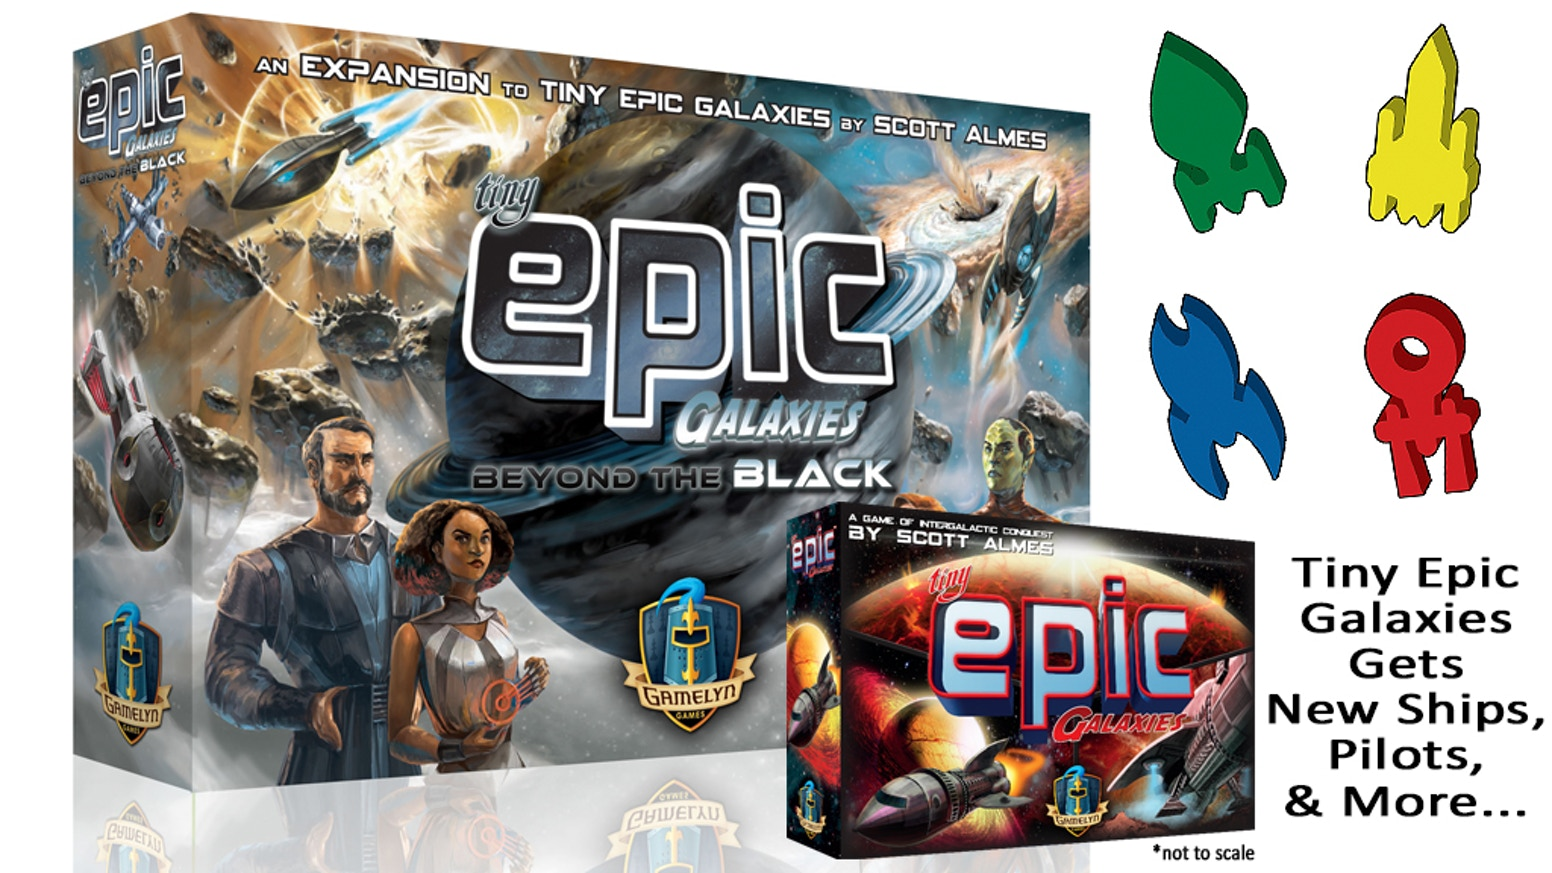 Tiny Epic Galaxies gets pilots, new ships, press-your-luck, and set collection in this full-box expansion! Take TEG to the next level!